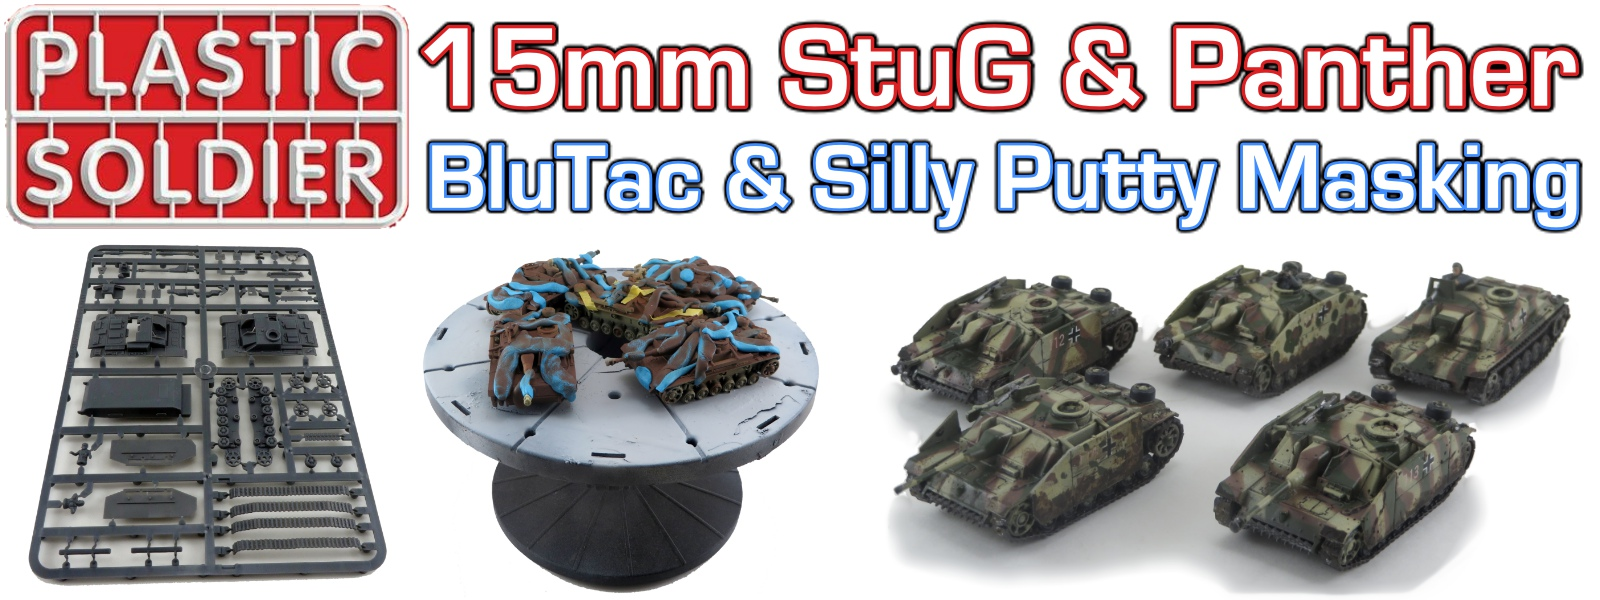 PSC StuG BluTack Masking Featured Image